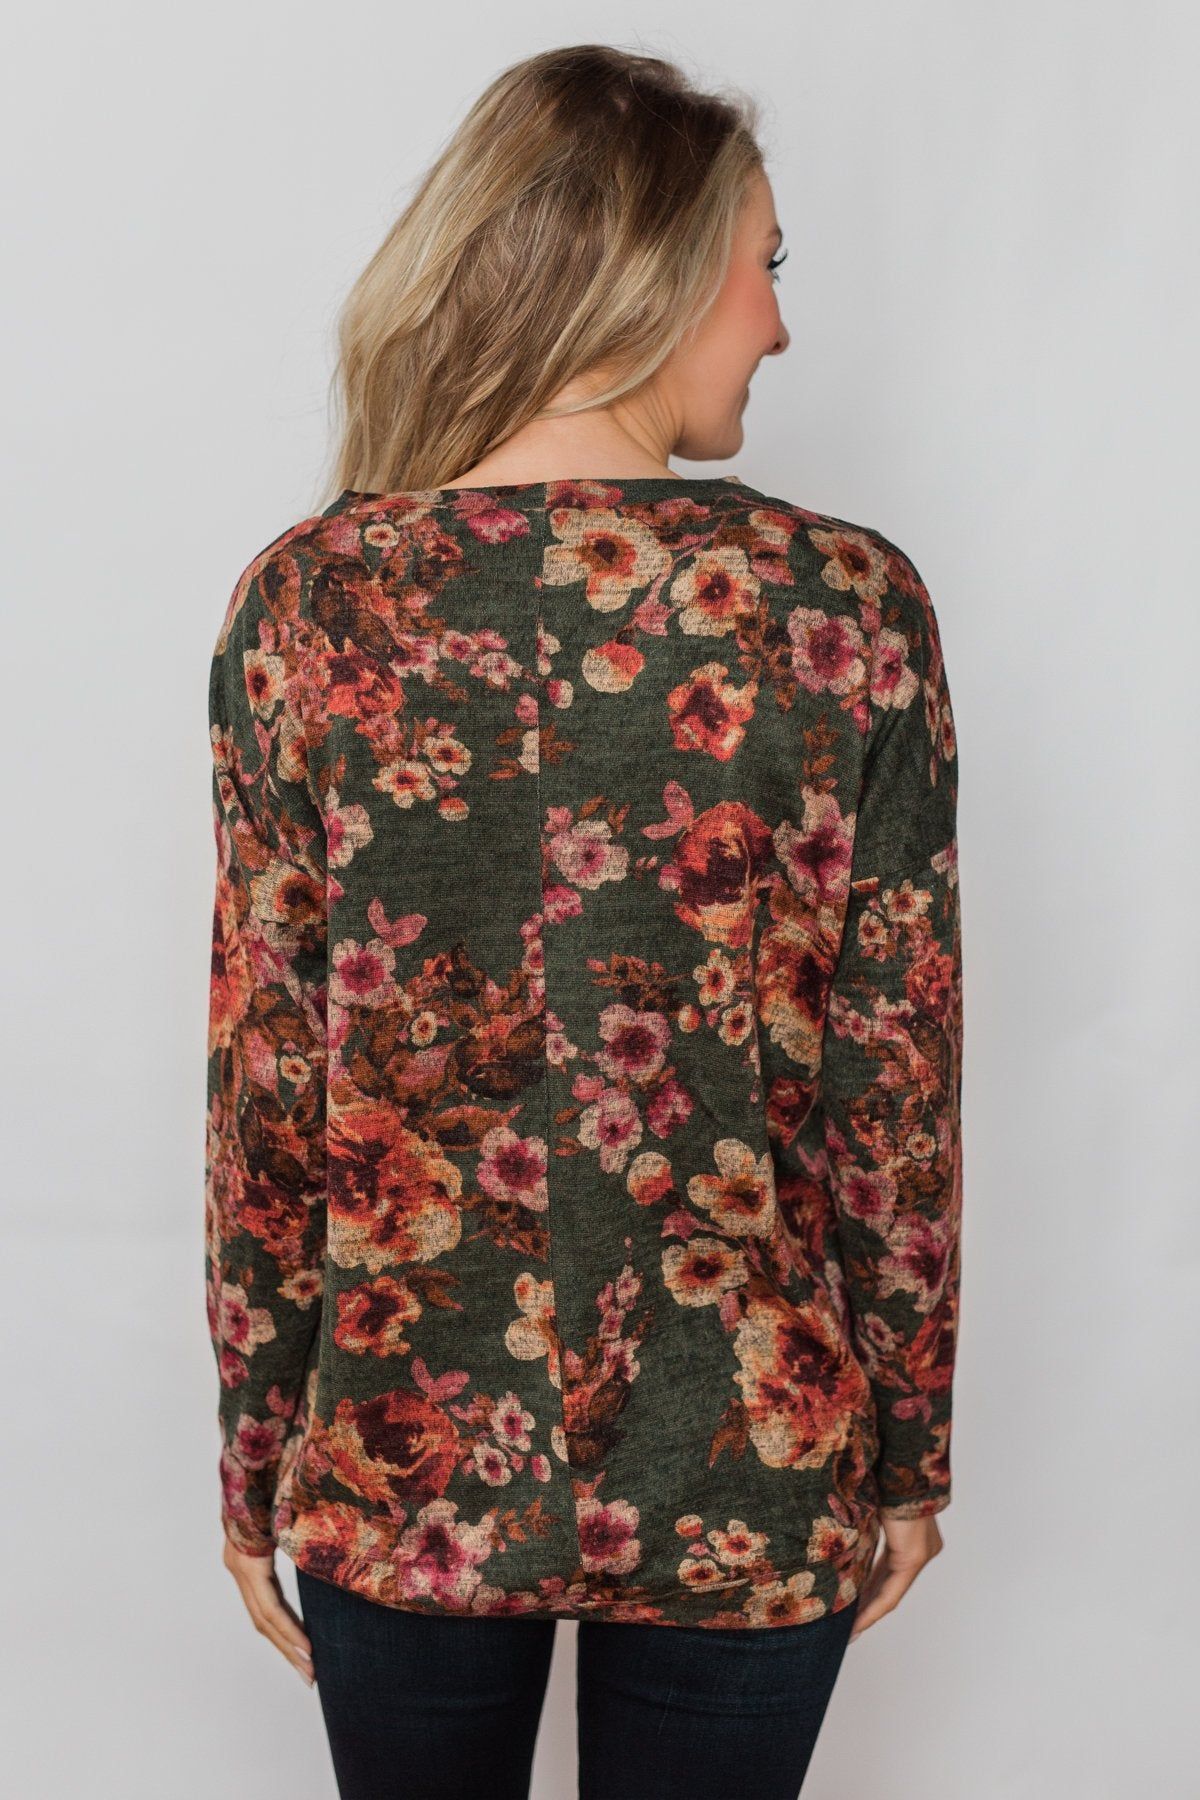 Just For You Floral Pullover Top- Olive